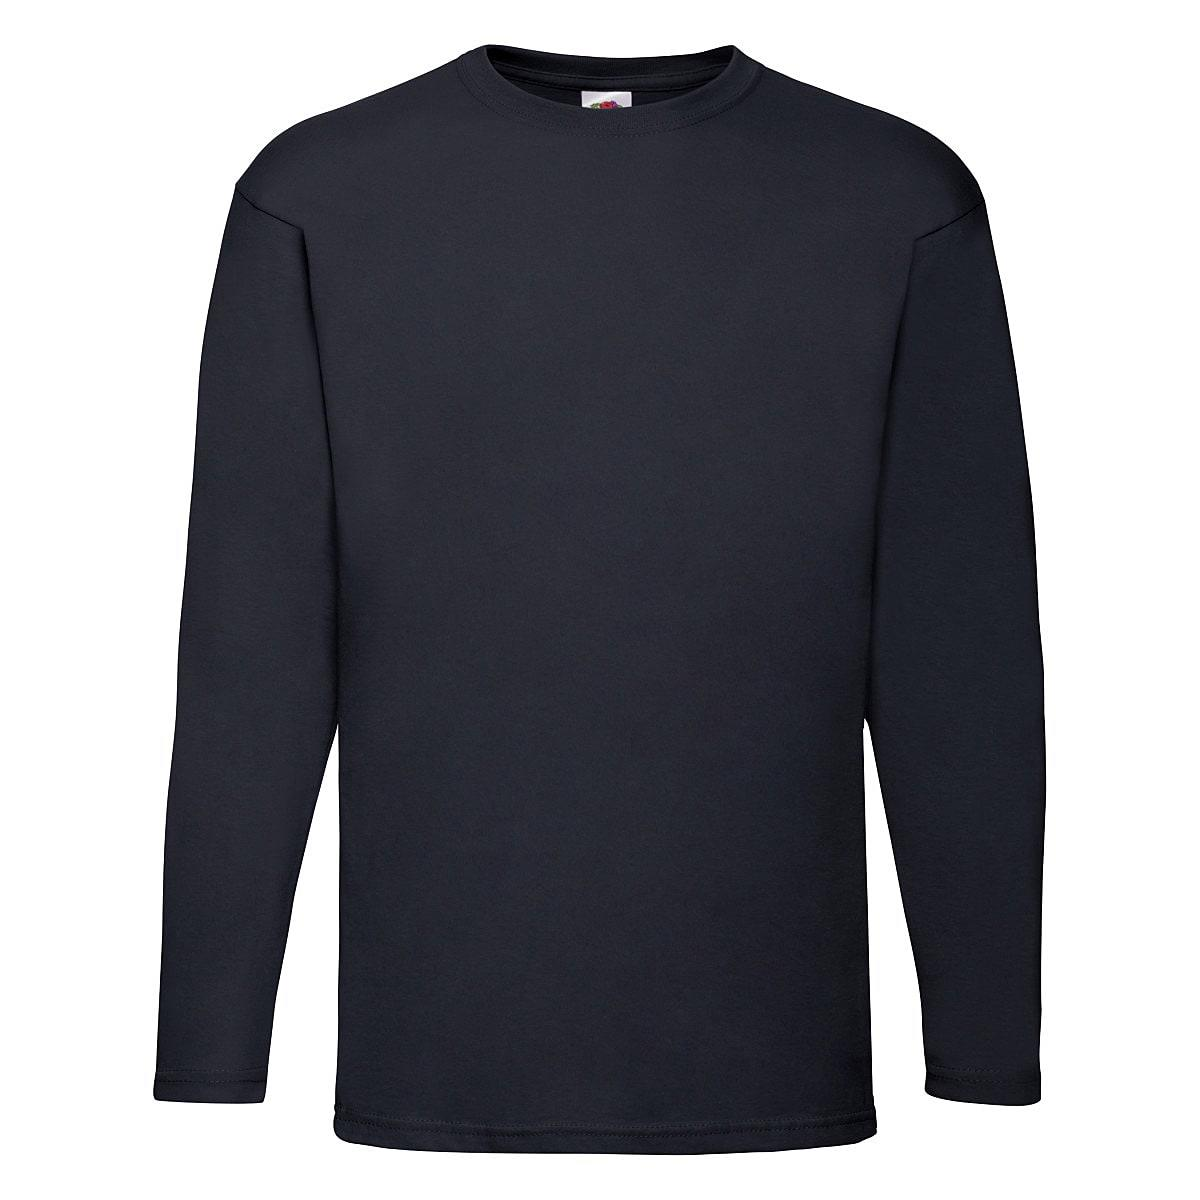 Fruit Of The Loom Valueweight Long-Sleeve T-Shirt in Deep Navy (Product Code: 61038)